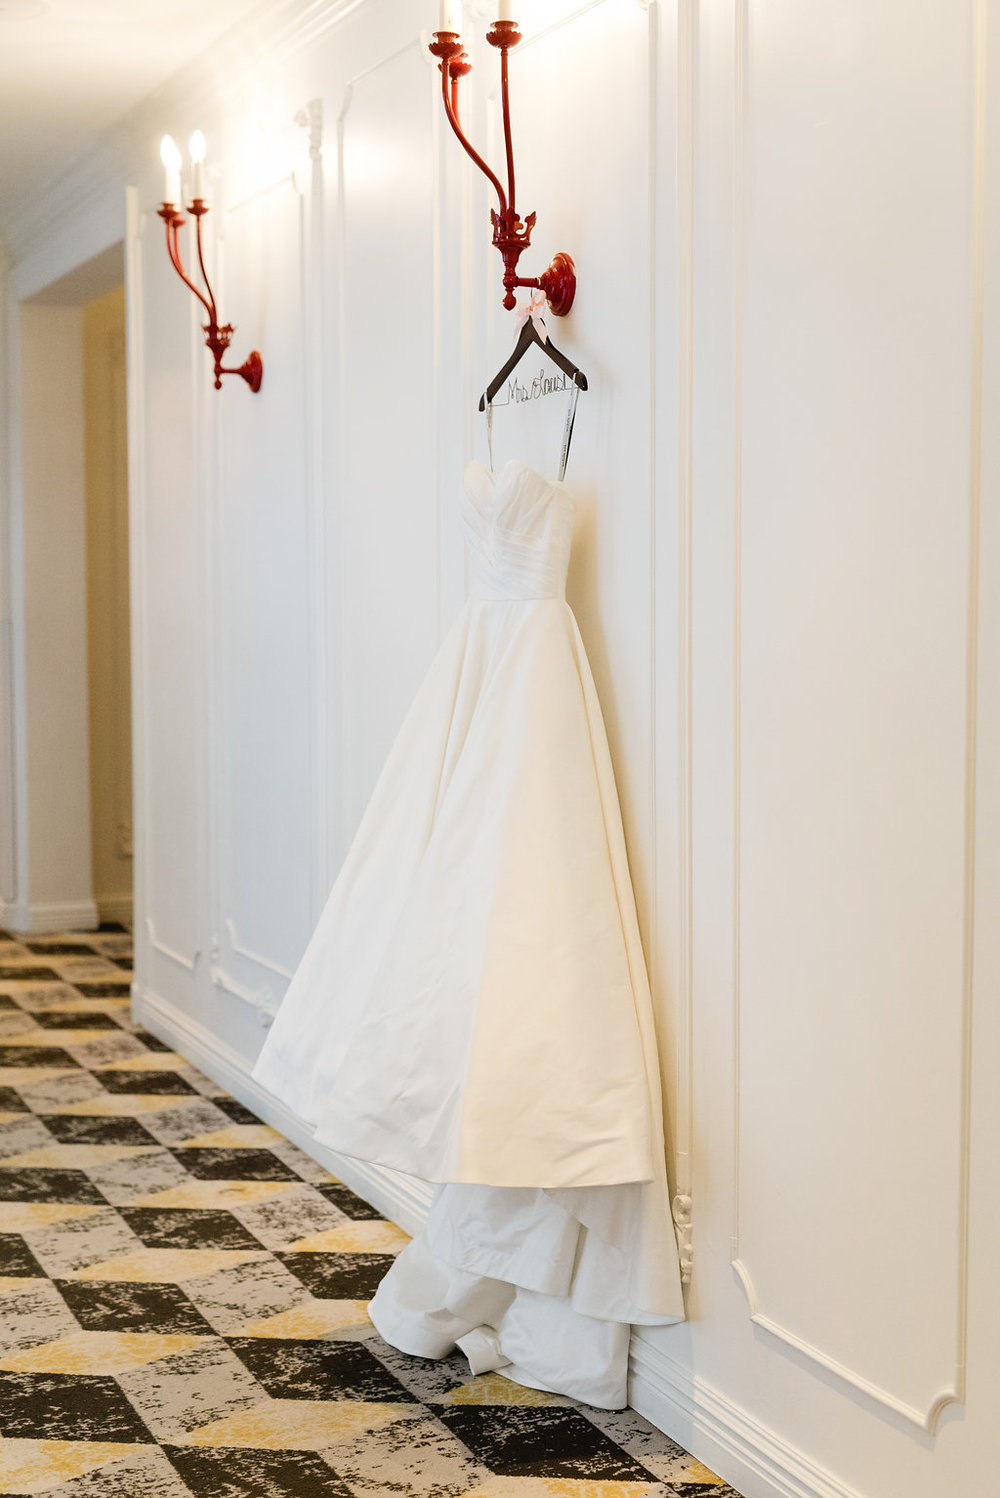 Wedding dress on name hanger for Pittsburgh wedding at Hotel Monaco